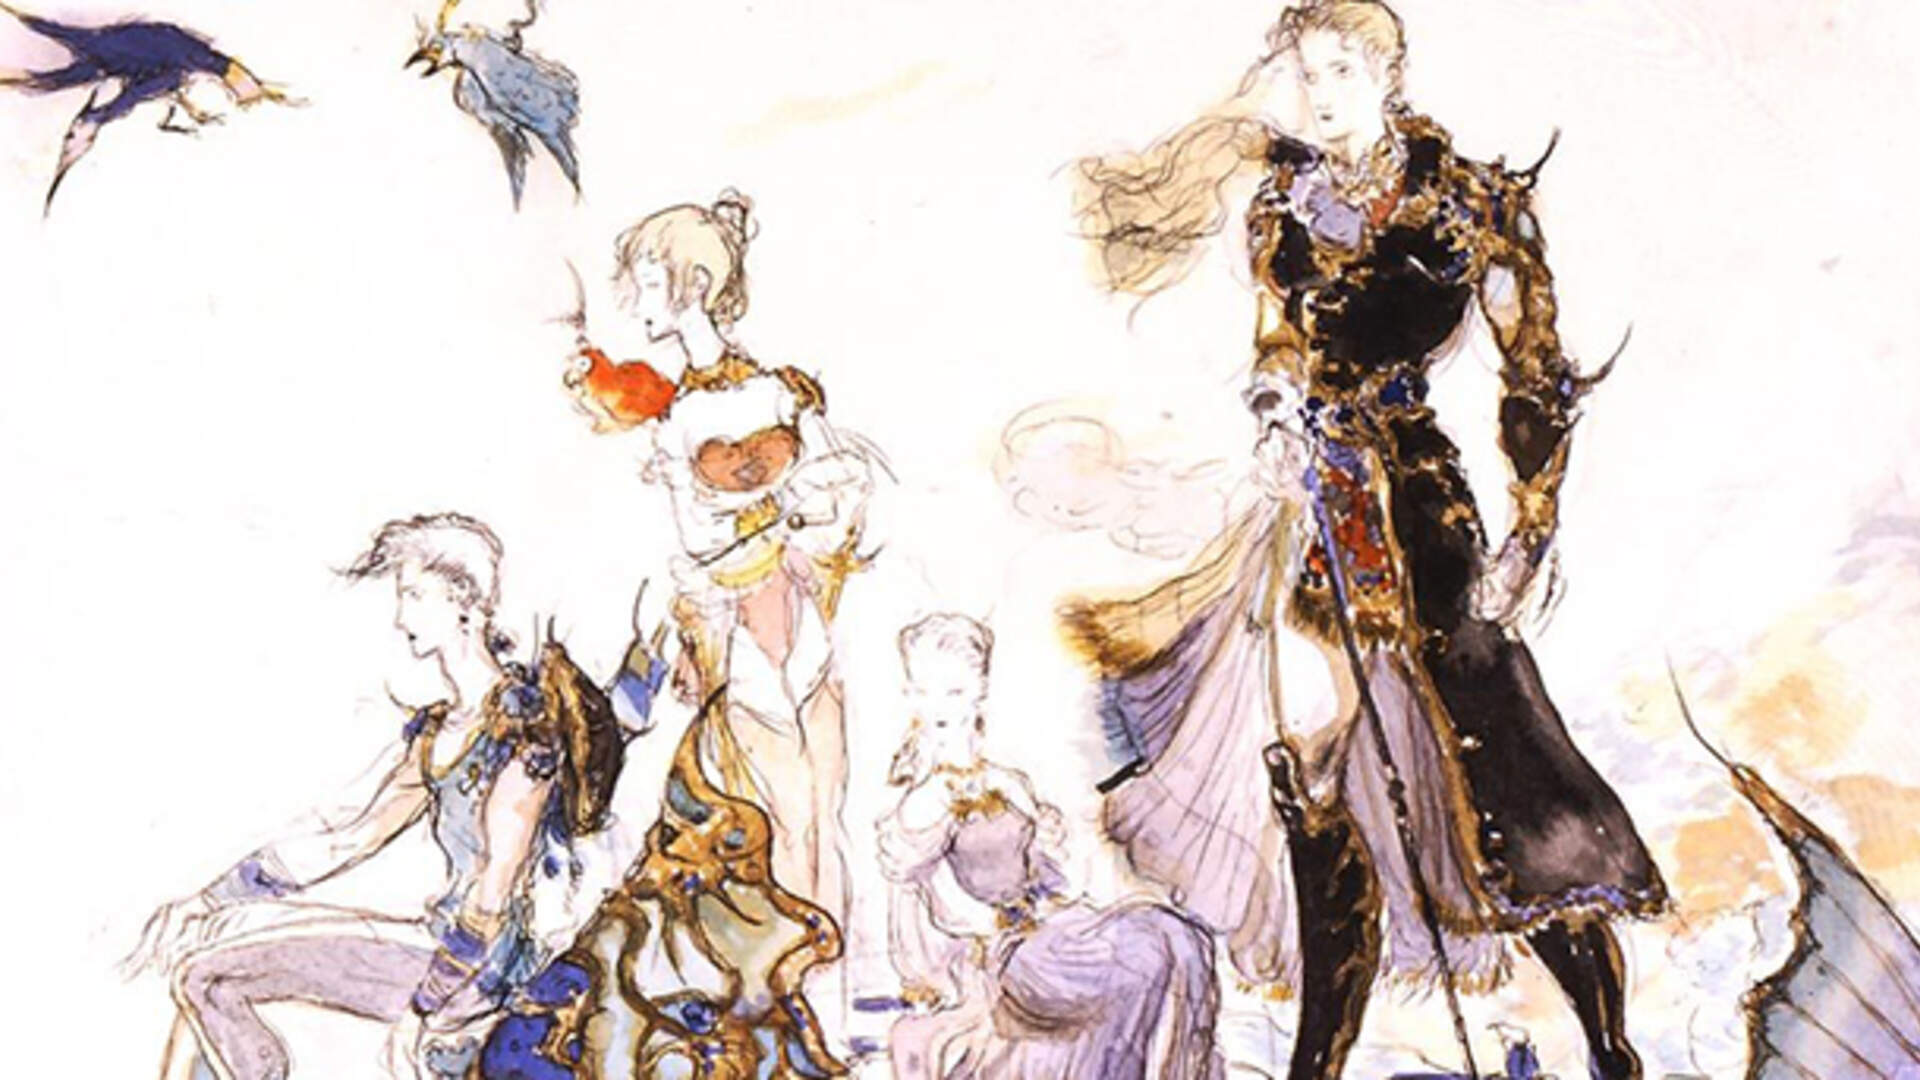 The Top 25 RPGs of All Time #25: Final Fantasy V